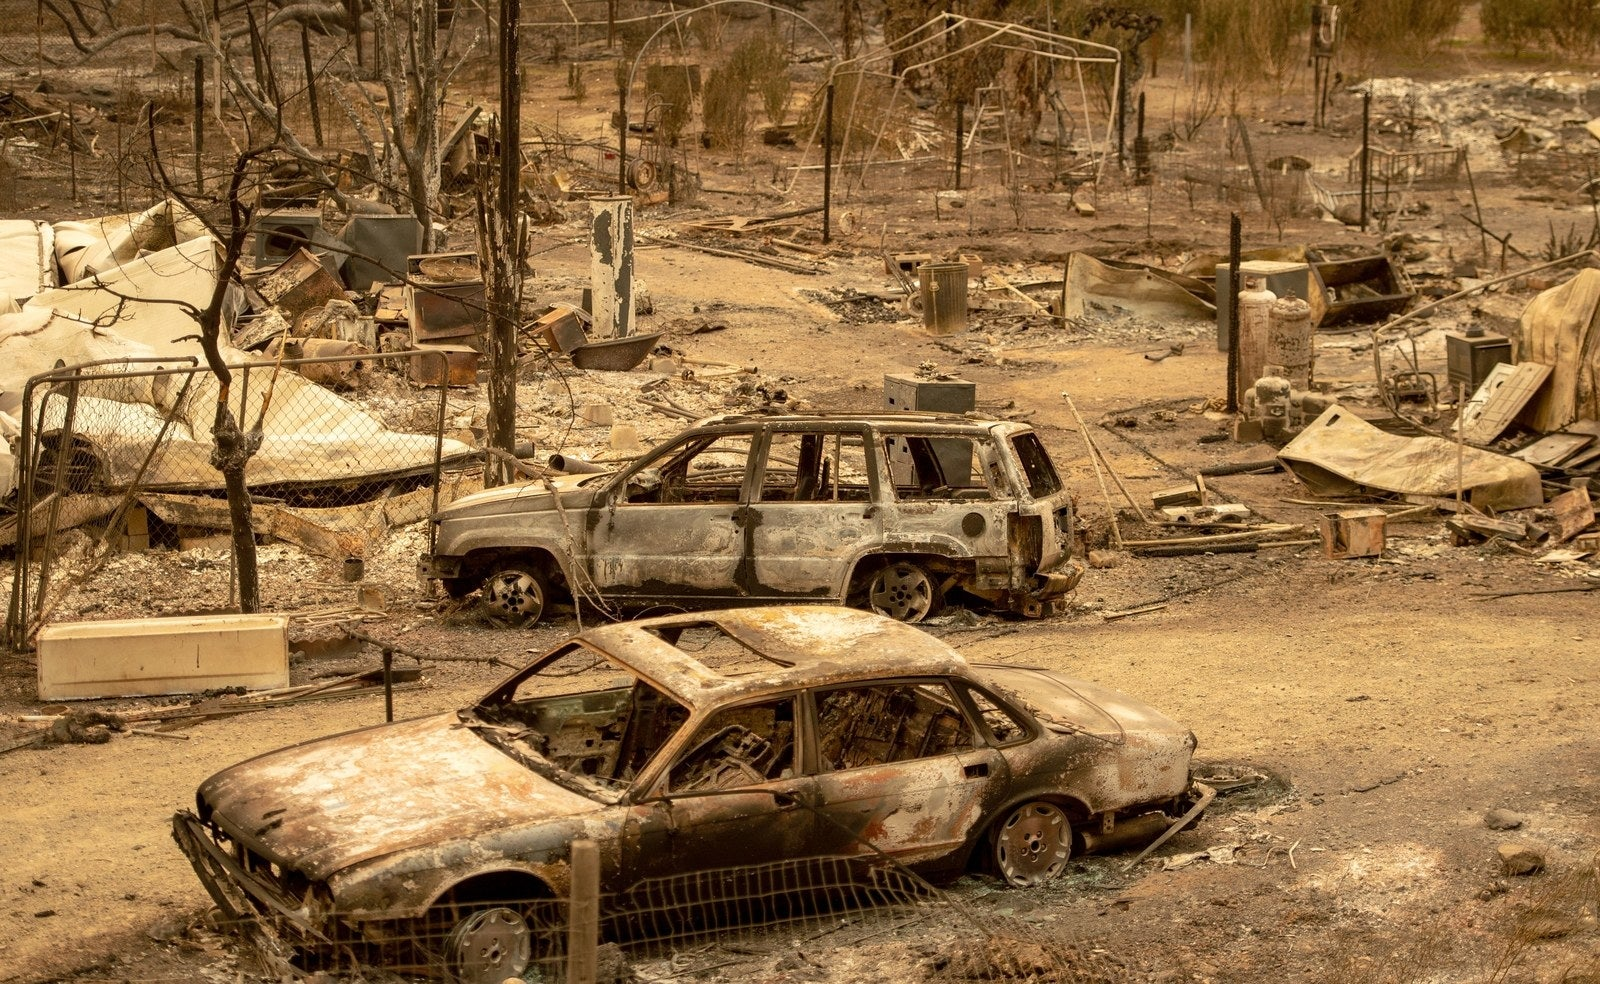 Burned-out cars from the Ranch fire, part of the Mendocino Complex fire, which hit Spring Valley in Northern California, on Aug. 7.